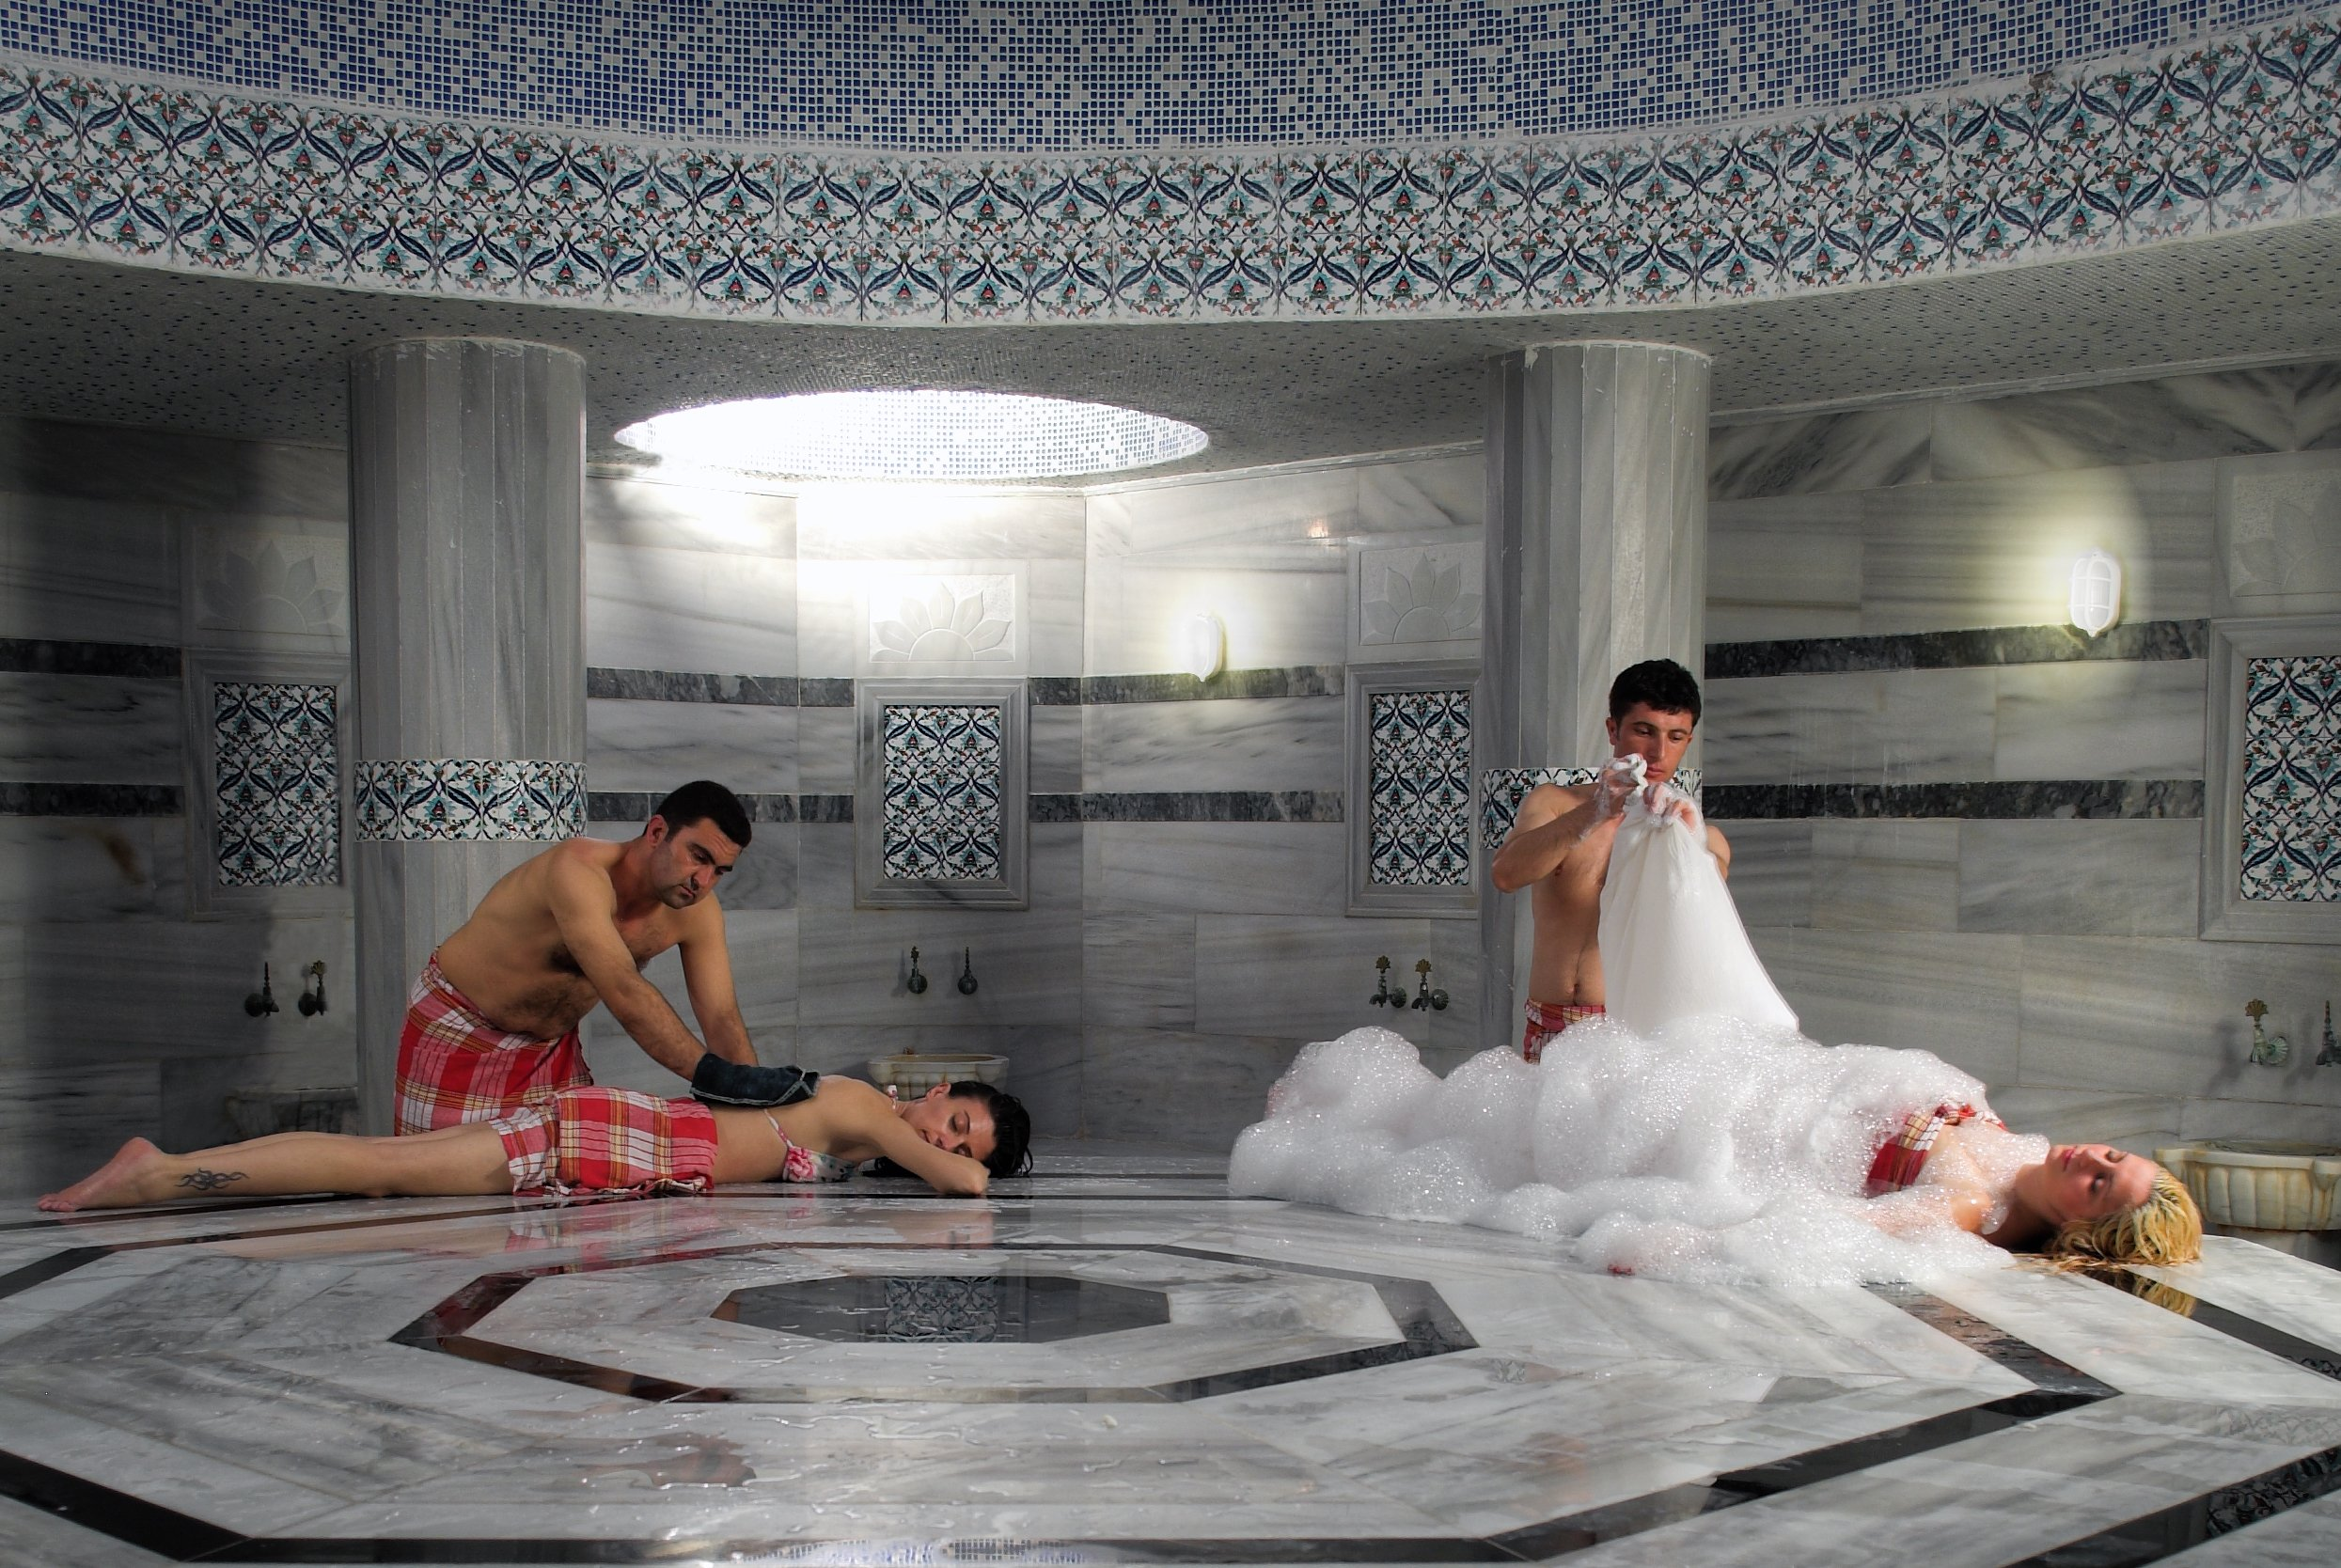 Turkish bath in Cappadocia